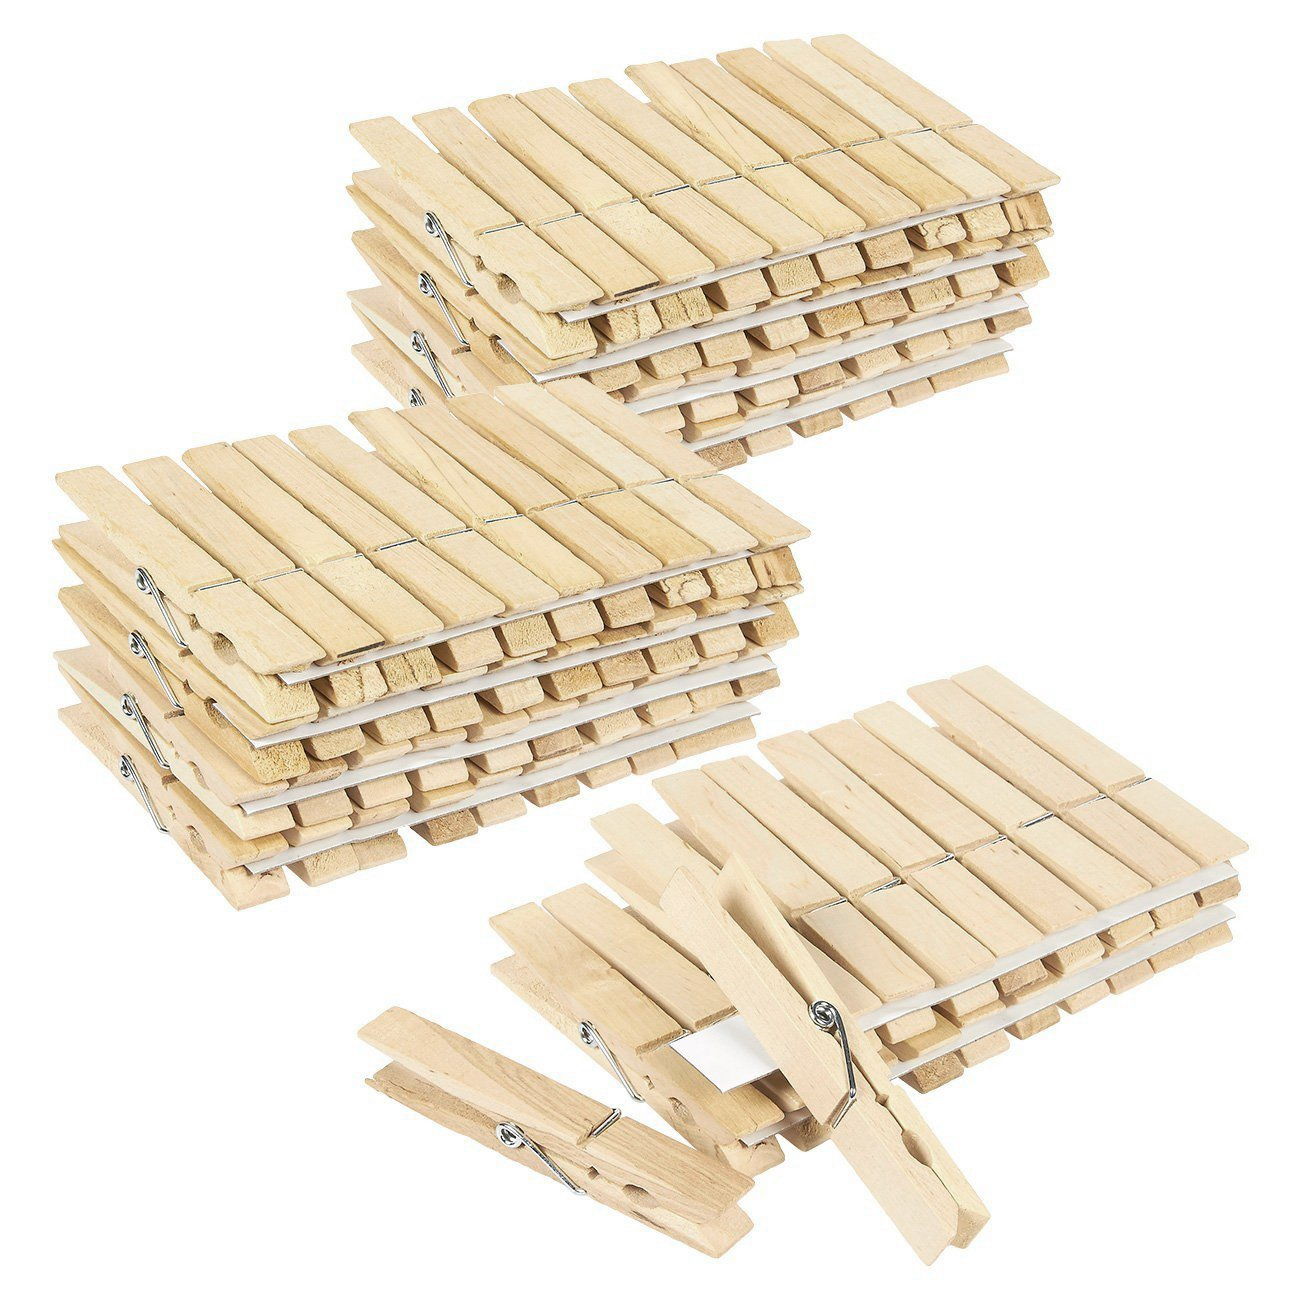 Juvale 100 Pack - Wooden Clothespins - Large Clothes Pegs Laundry, Arts, Crafts, Decoration, 4 x .5 x .5 inches by Juvale